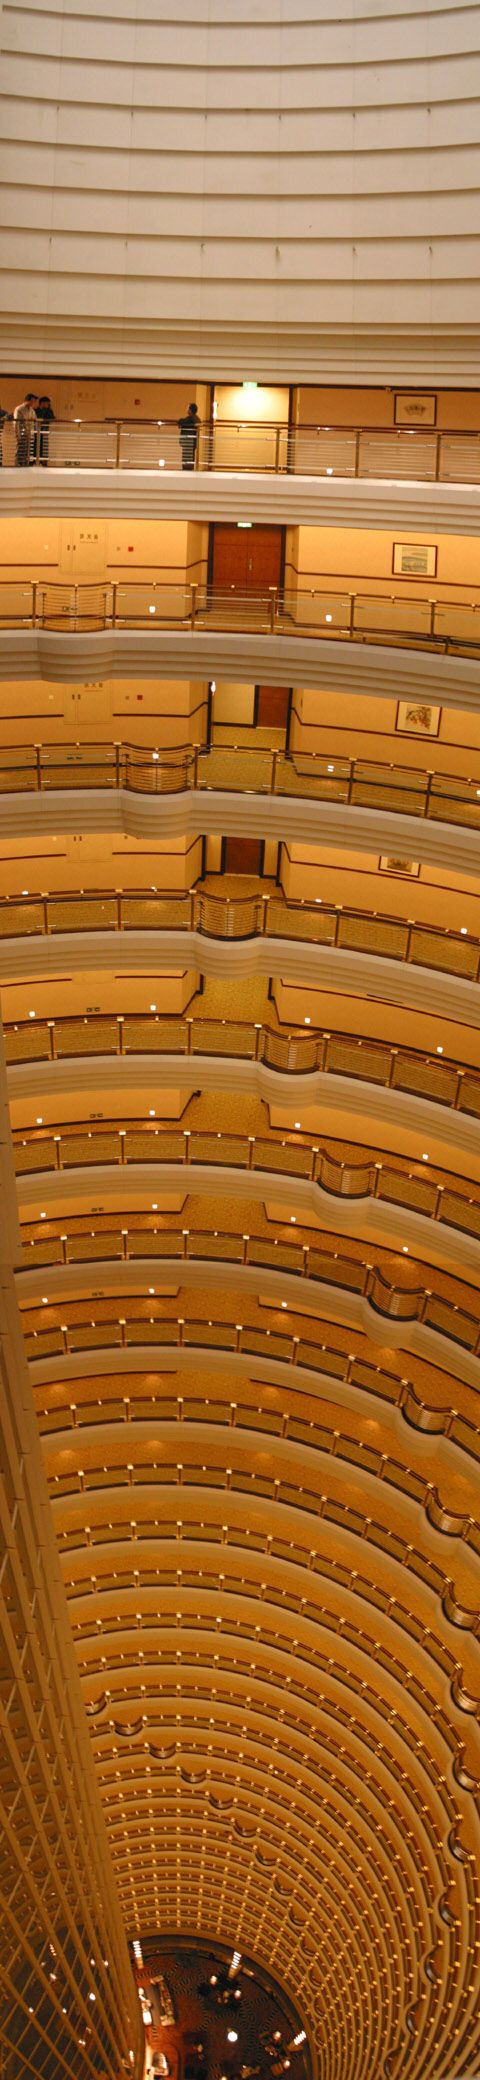 Grand Hyatt Hotel, Jin Mao Tower, Shanghai - There is no way I could stay up that high, but the picture is amazing!